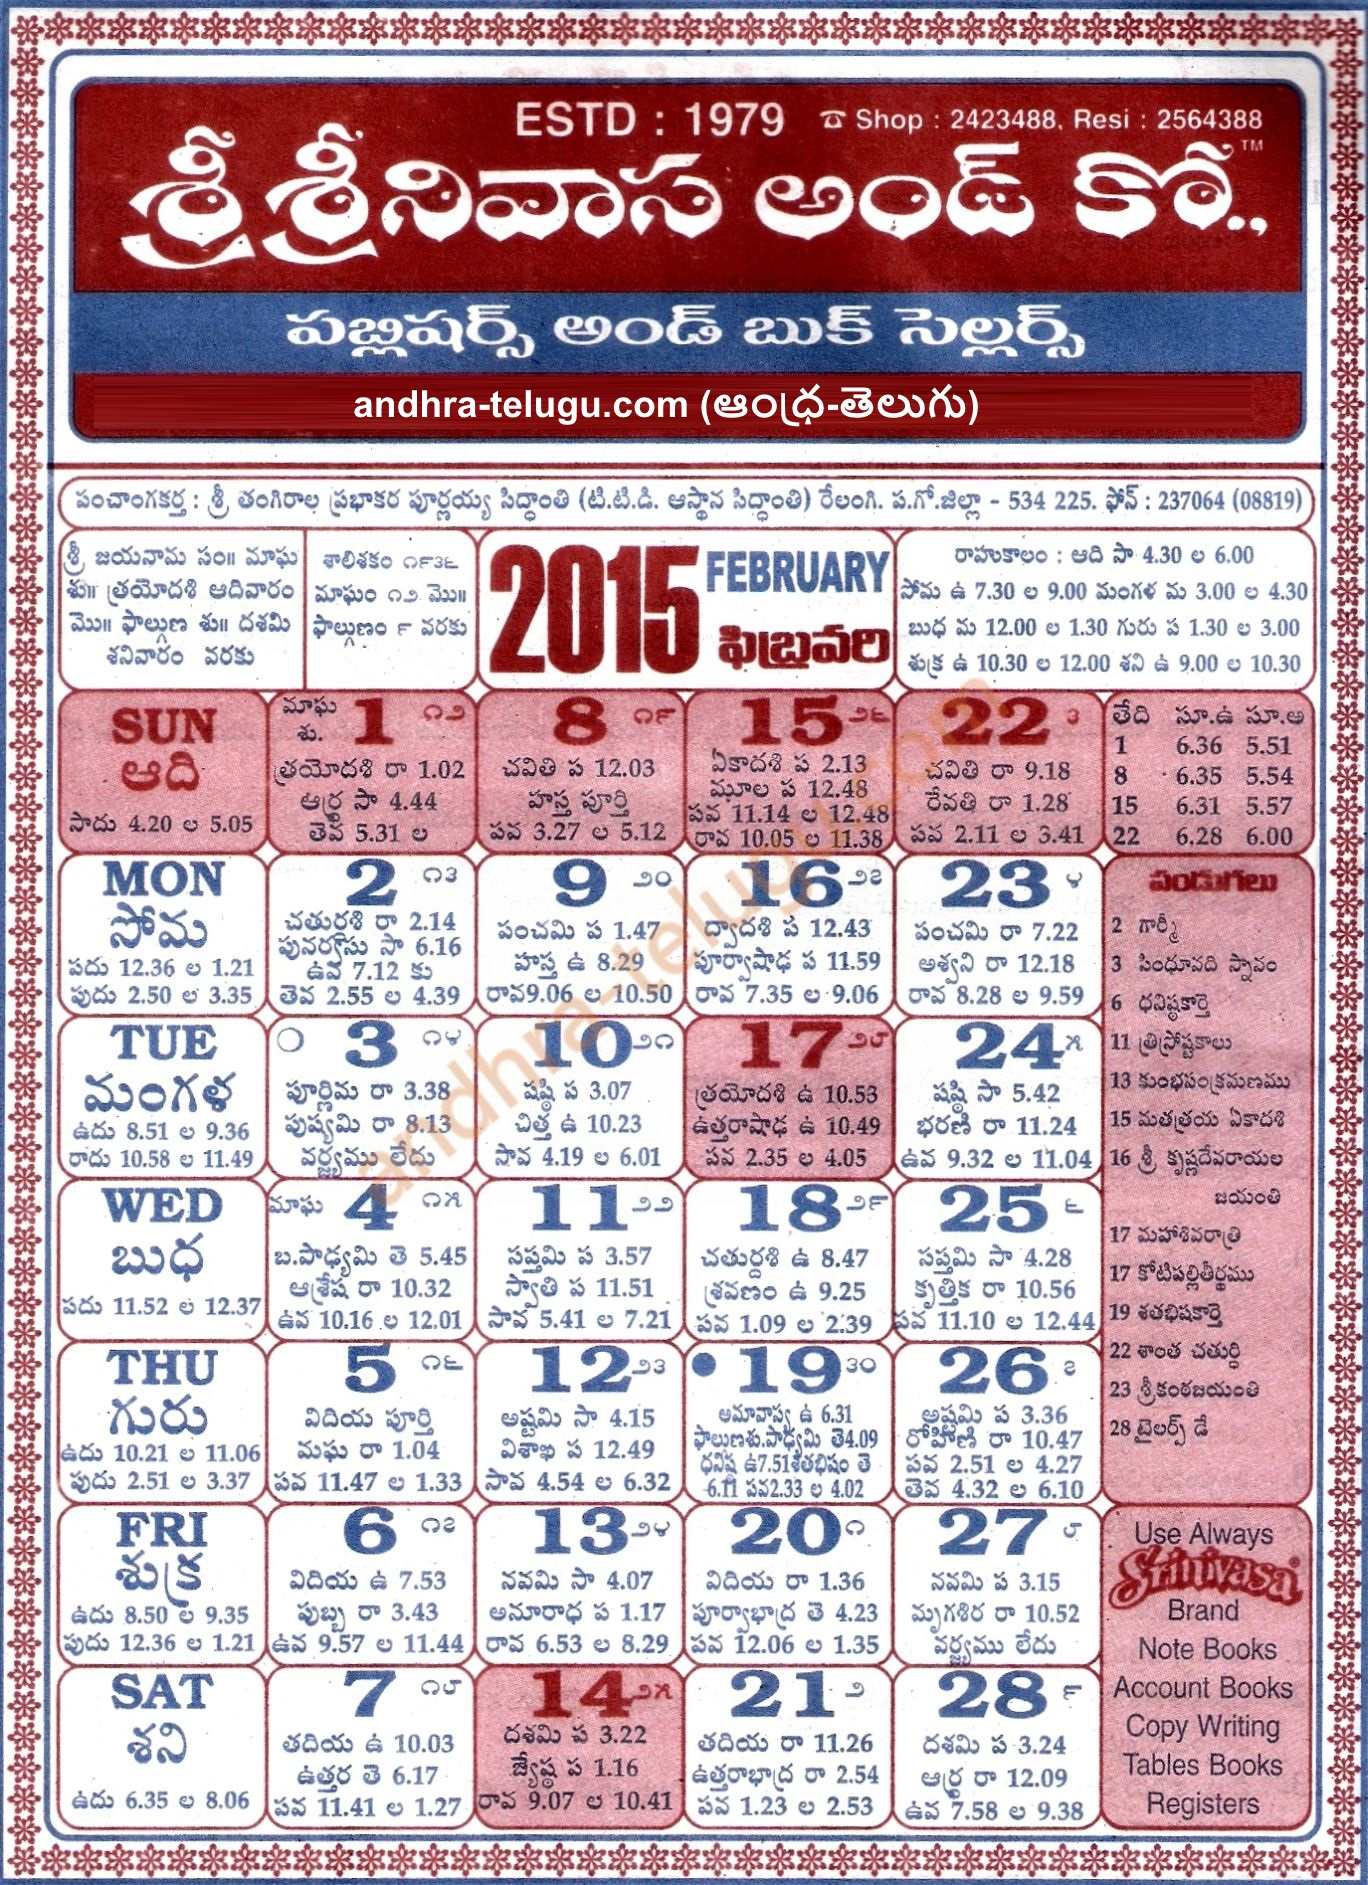 Calendar In Telugu : Srinivasa and co telugu calendar andhra